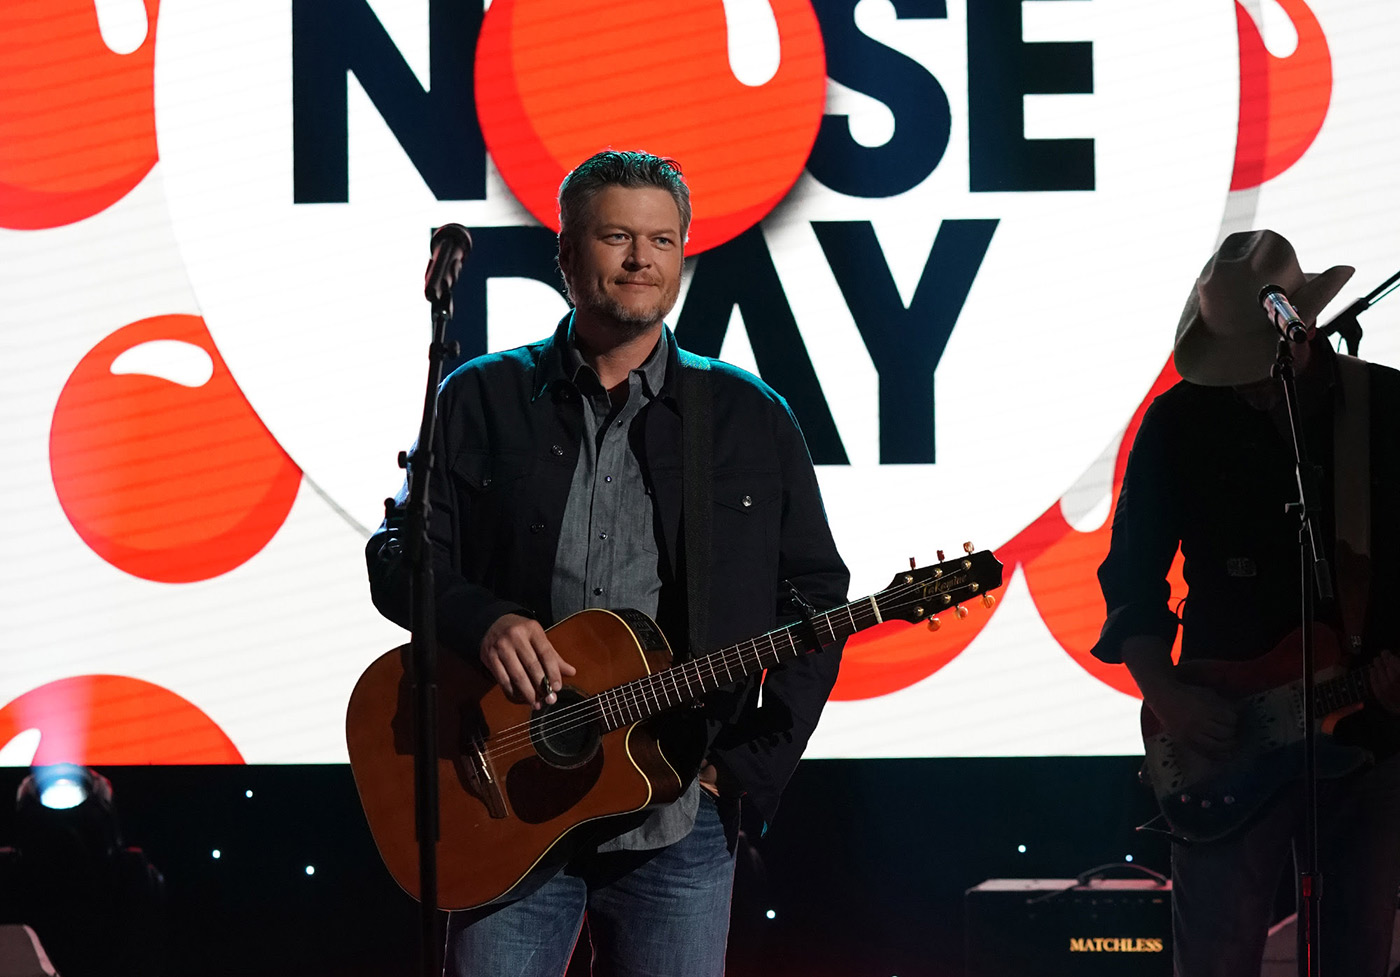 Nbc Christmas Musical 2020 Red Nose Day's Special Night on NBC 2020